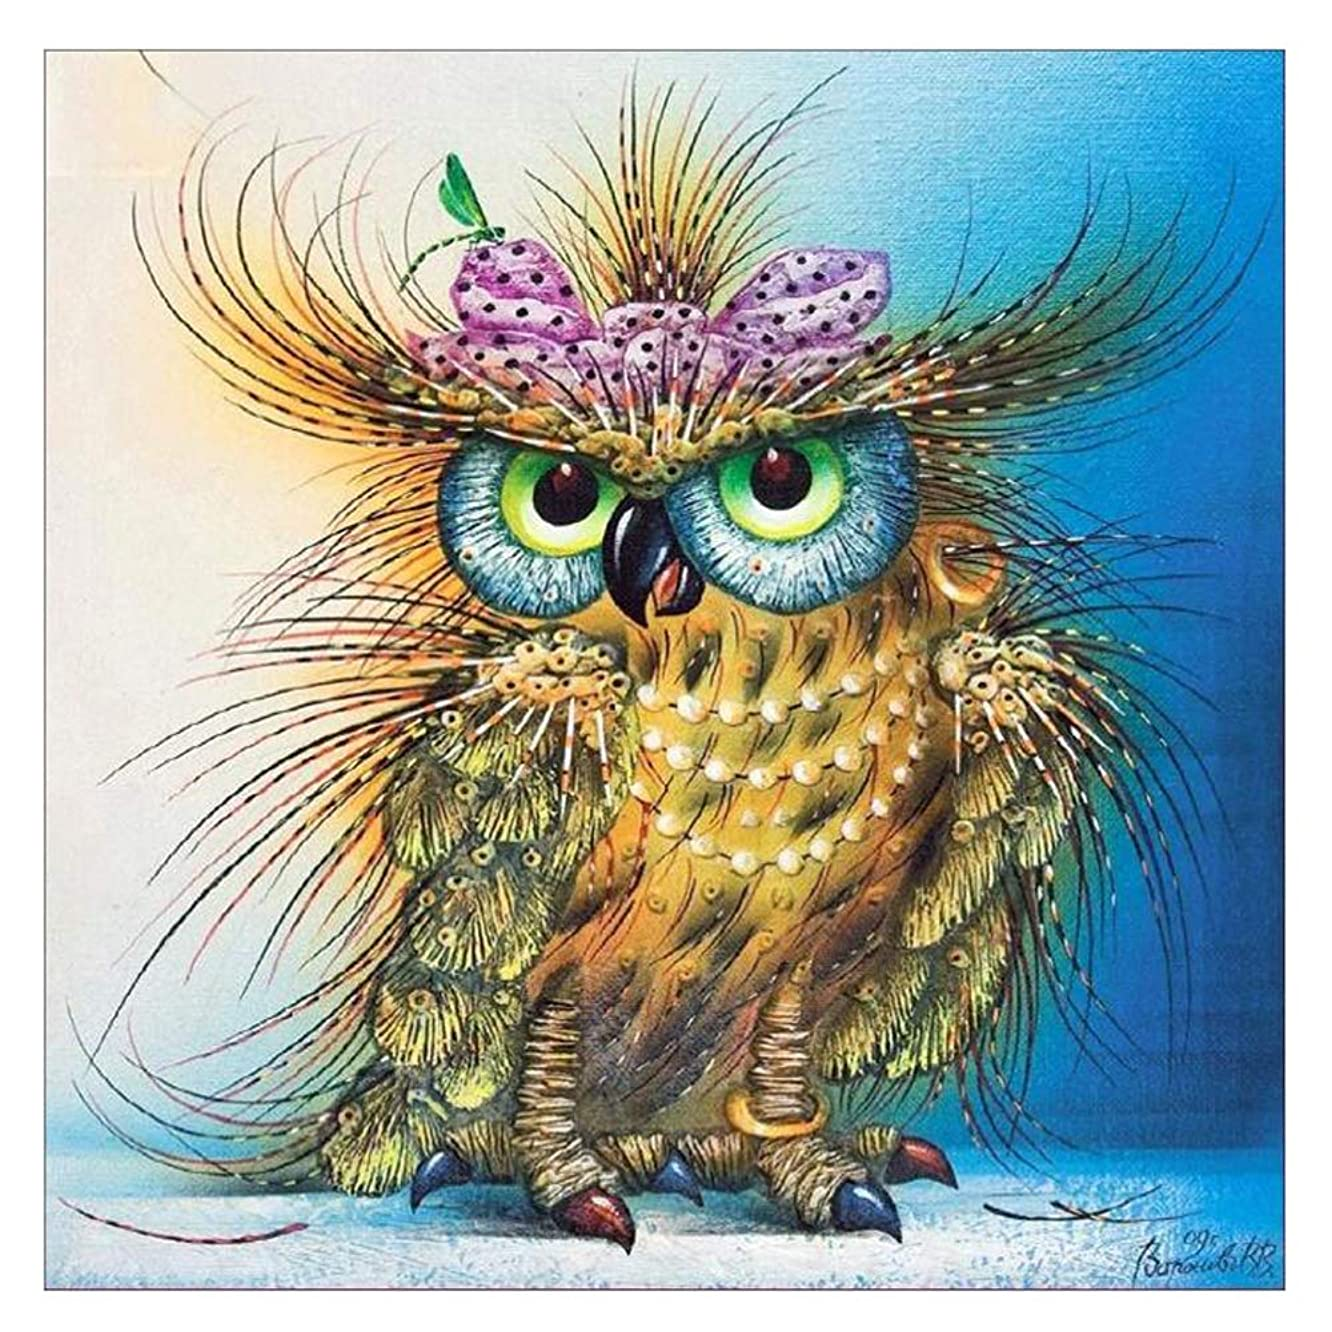 DIY 5D Diamond Painting Kits Full Drill Colorful Owl Diamond Paint by Number Kits Crafts & Sewing Cross Stitch for Adults Kids,Diamond Rhinestone Crystal Painting Kit Art Craft for Home Sticker